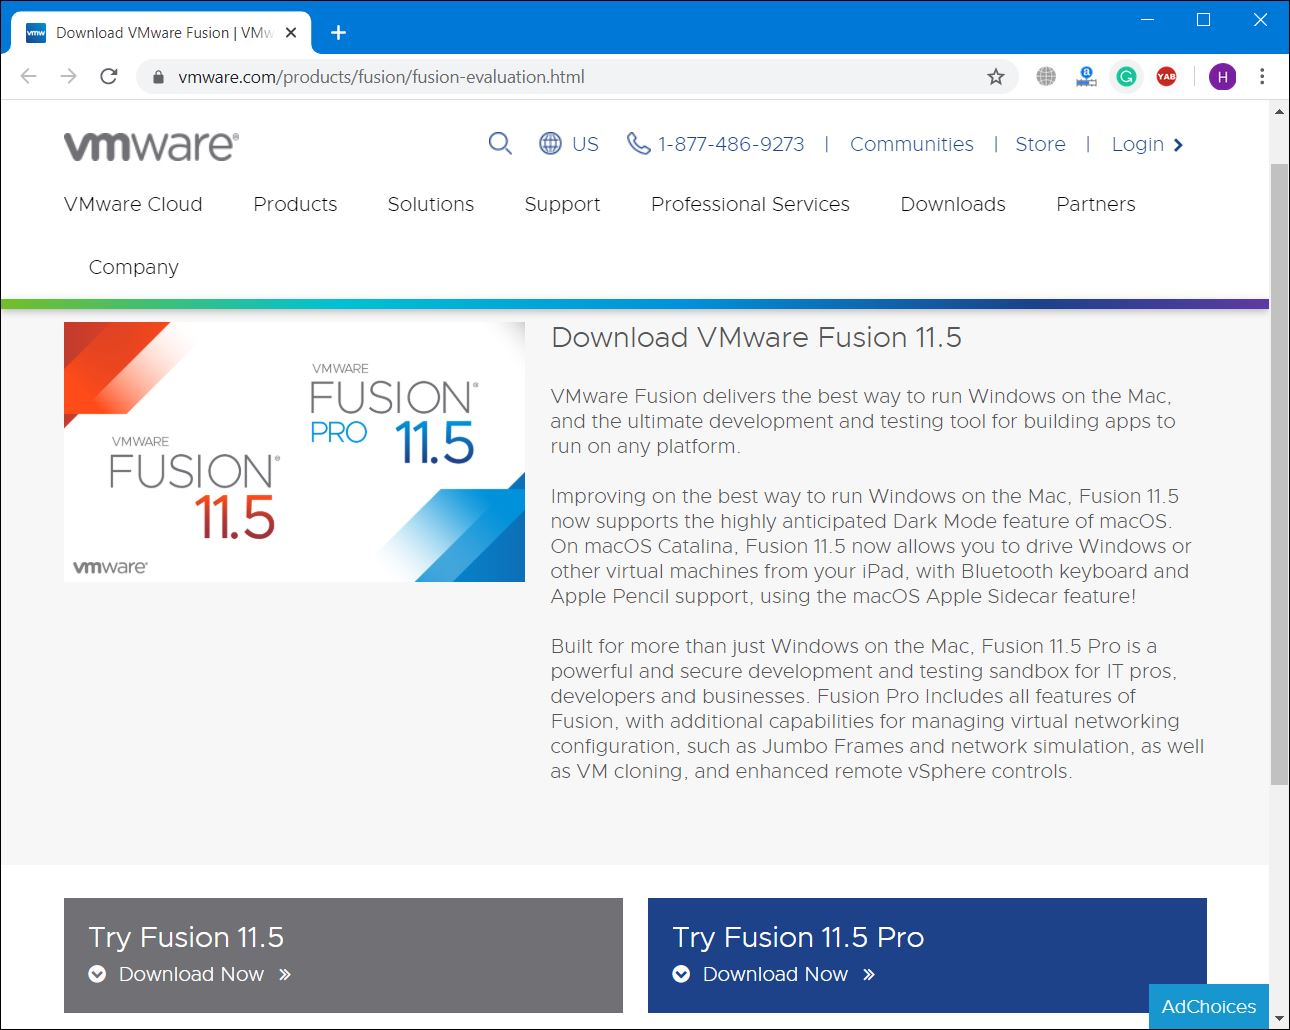 Download VMware Fusion